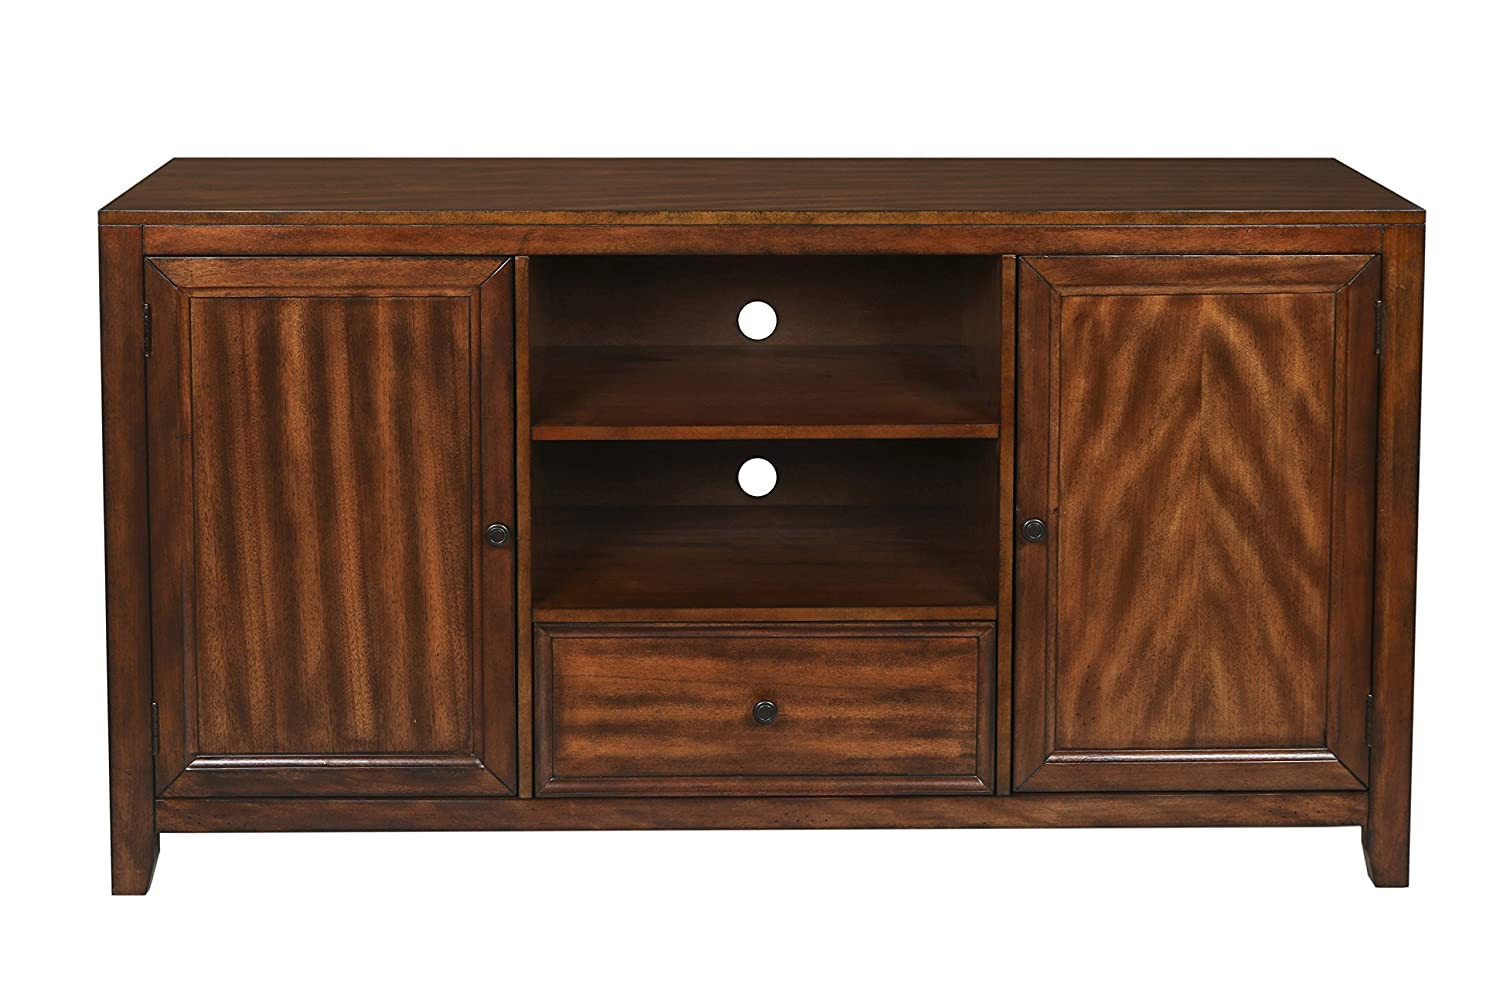 New Classic Contempo Entertainment Console, Burnished Walnut New Classic Home Furnishings 10-711-10